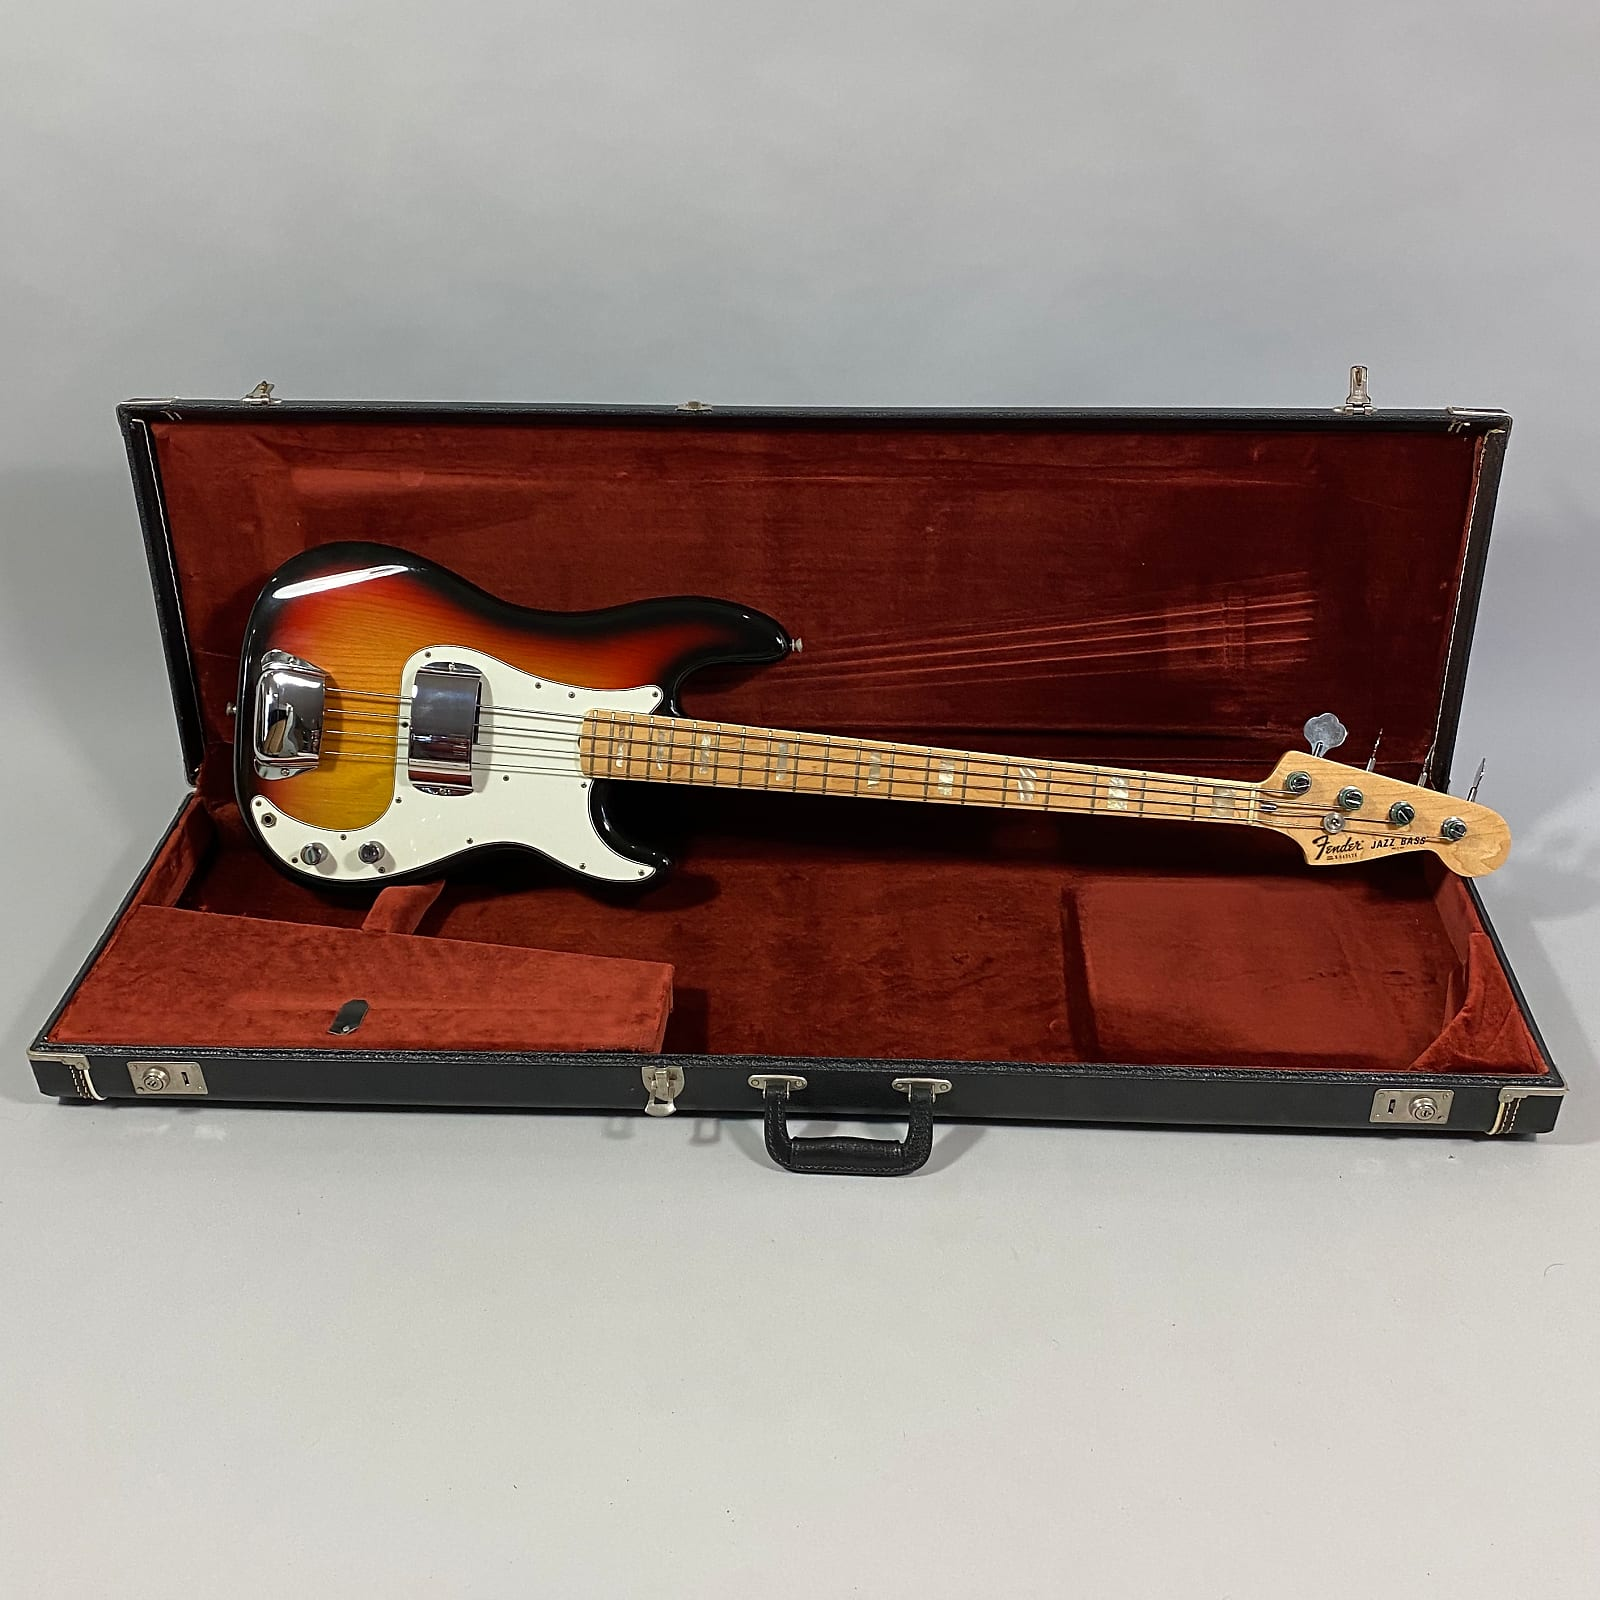 1978 Fender Jazz bass w '76 Precision body